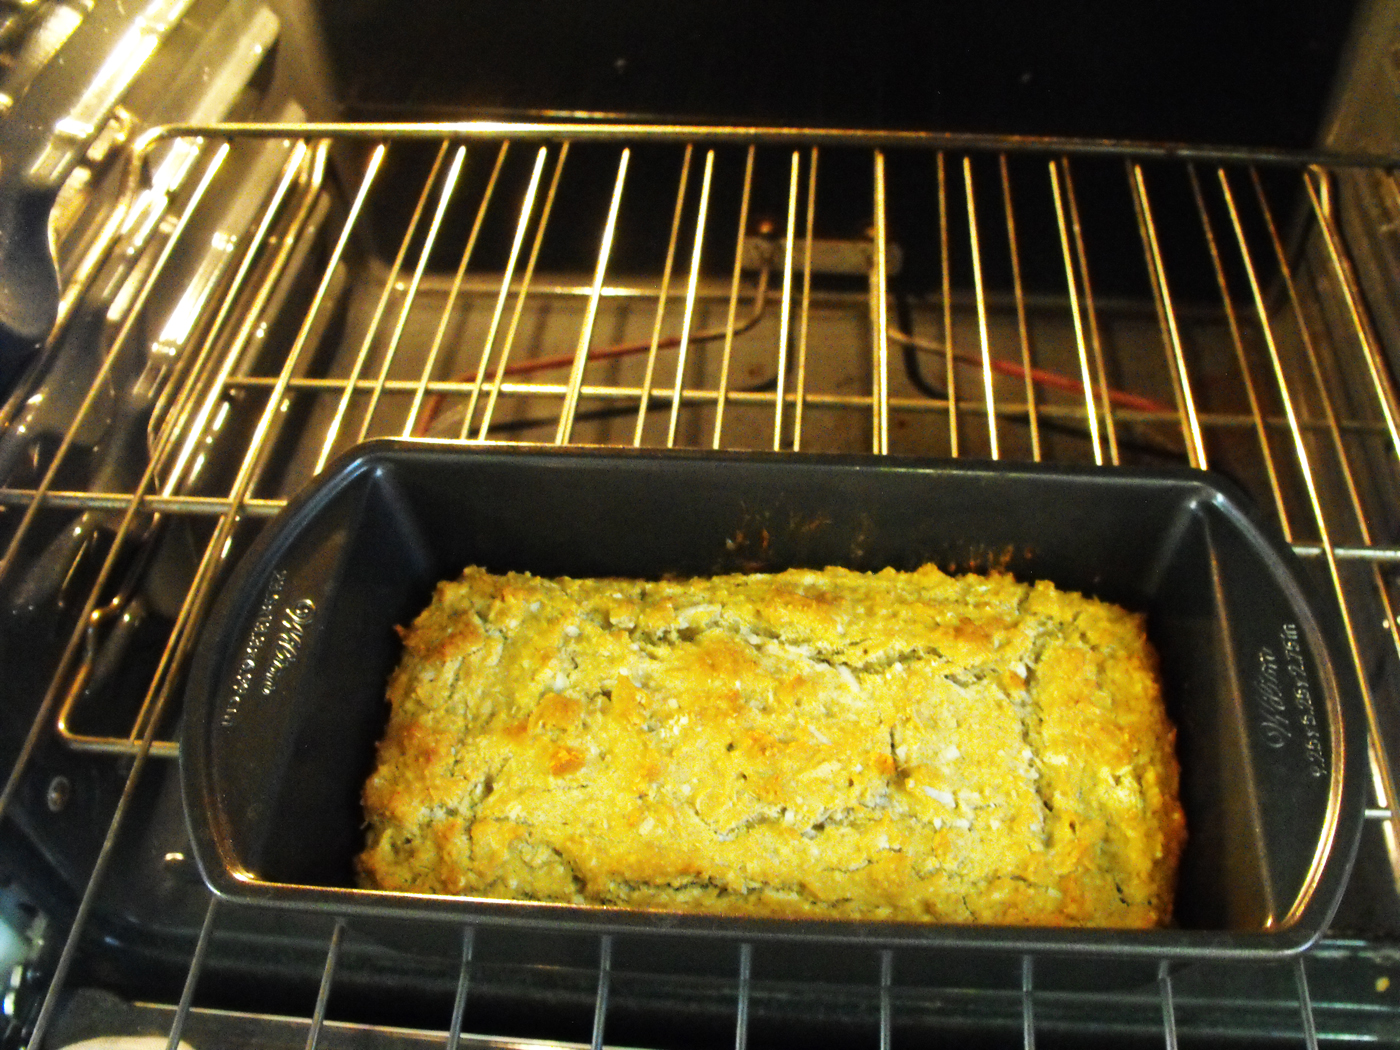 Fibroid friendly gluten free Coconut Sweet Bread in baking pan